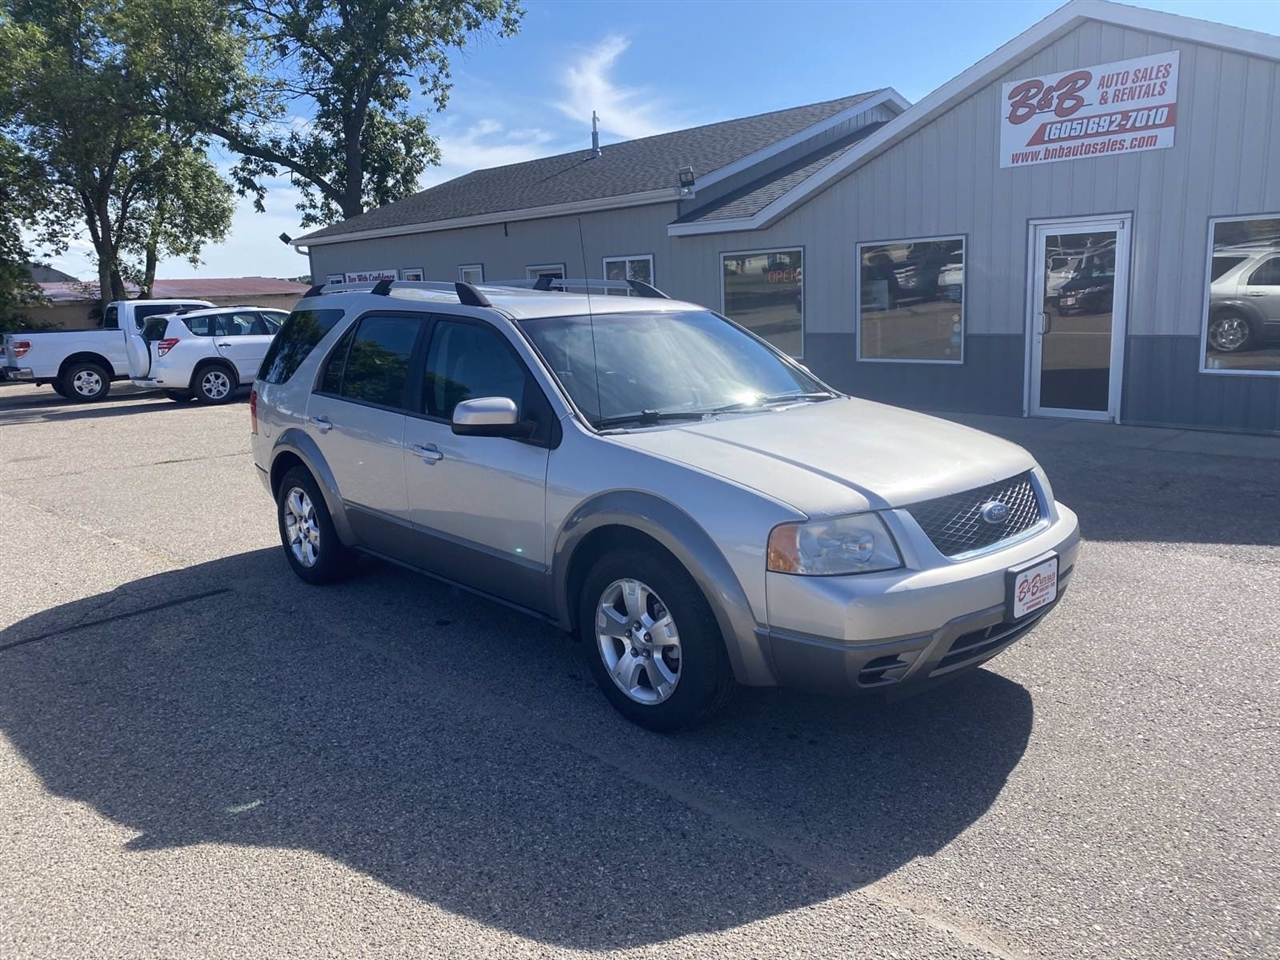 Ford Freestyle 4dr Wgn SEL AWD 2007